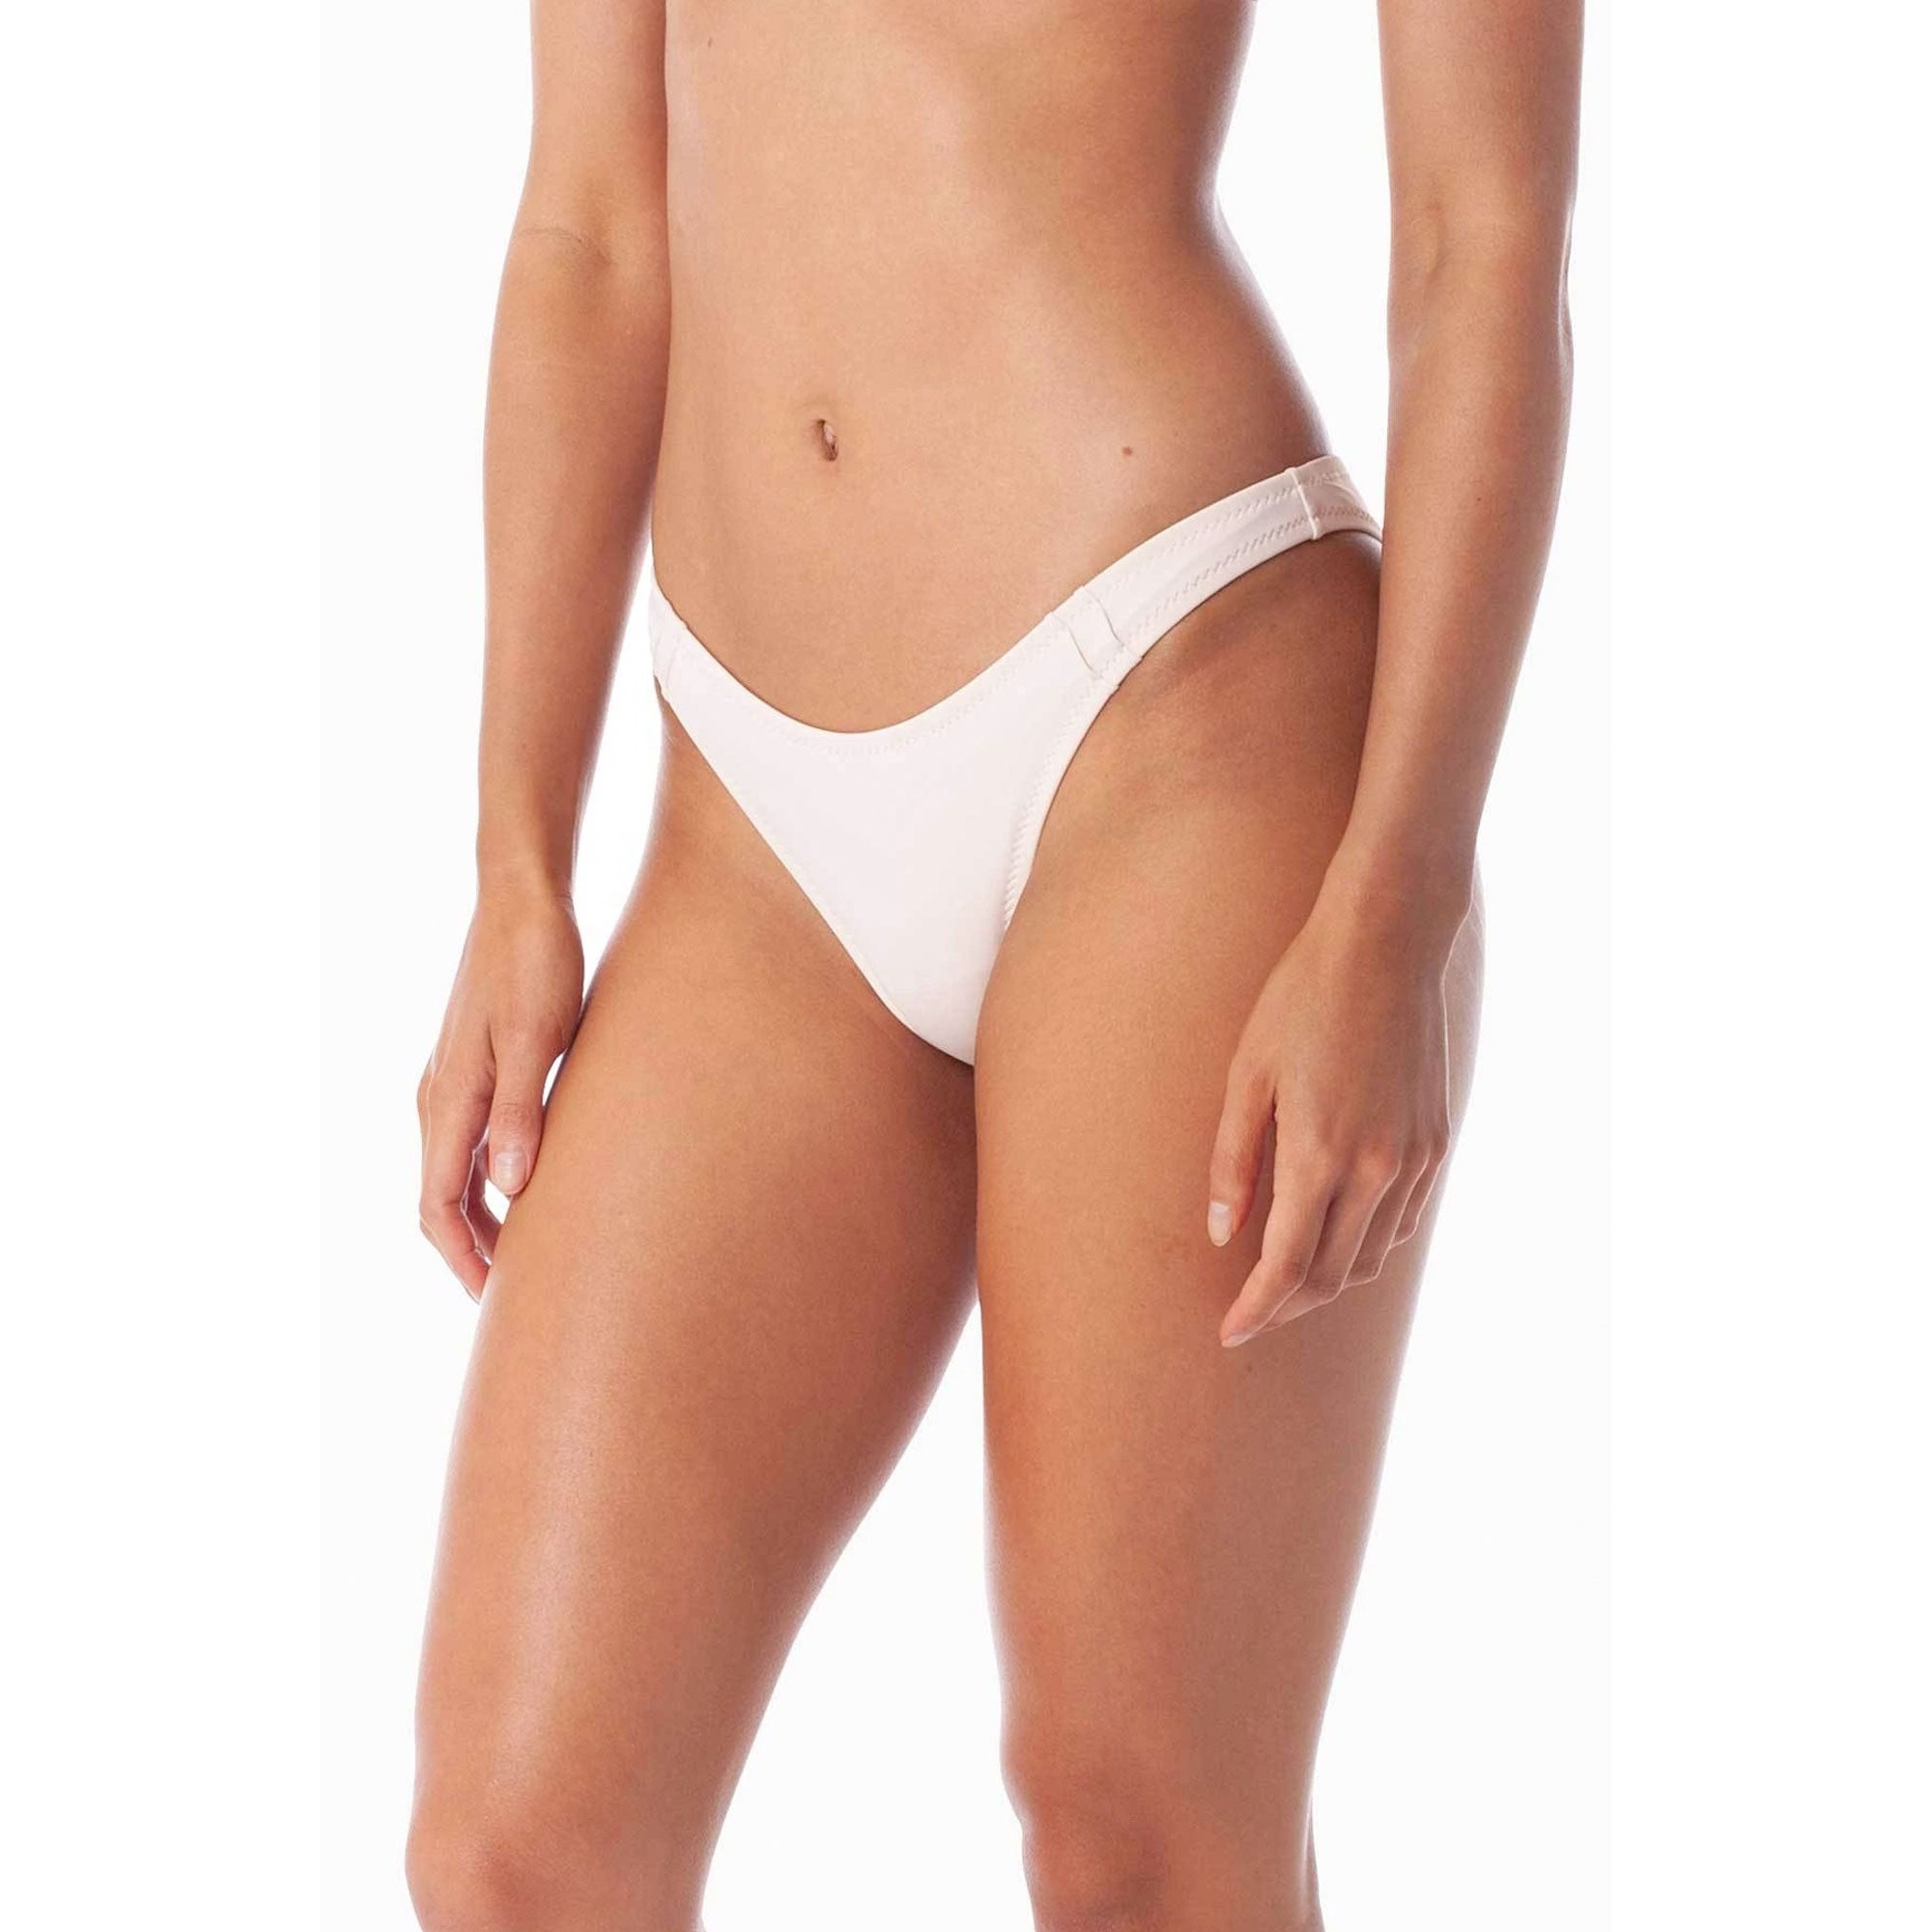 Rhythm Seaside Hi-Cut Women's Bikini Bottoms